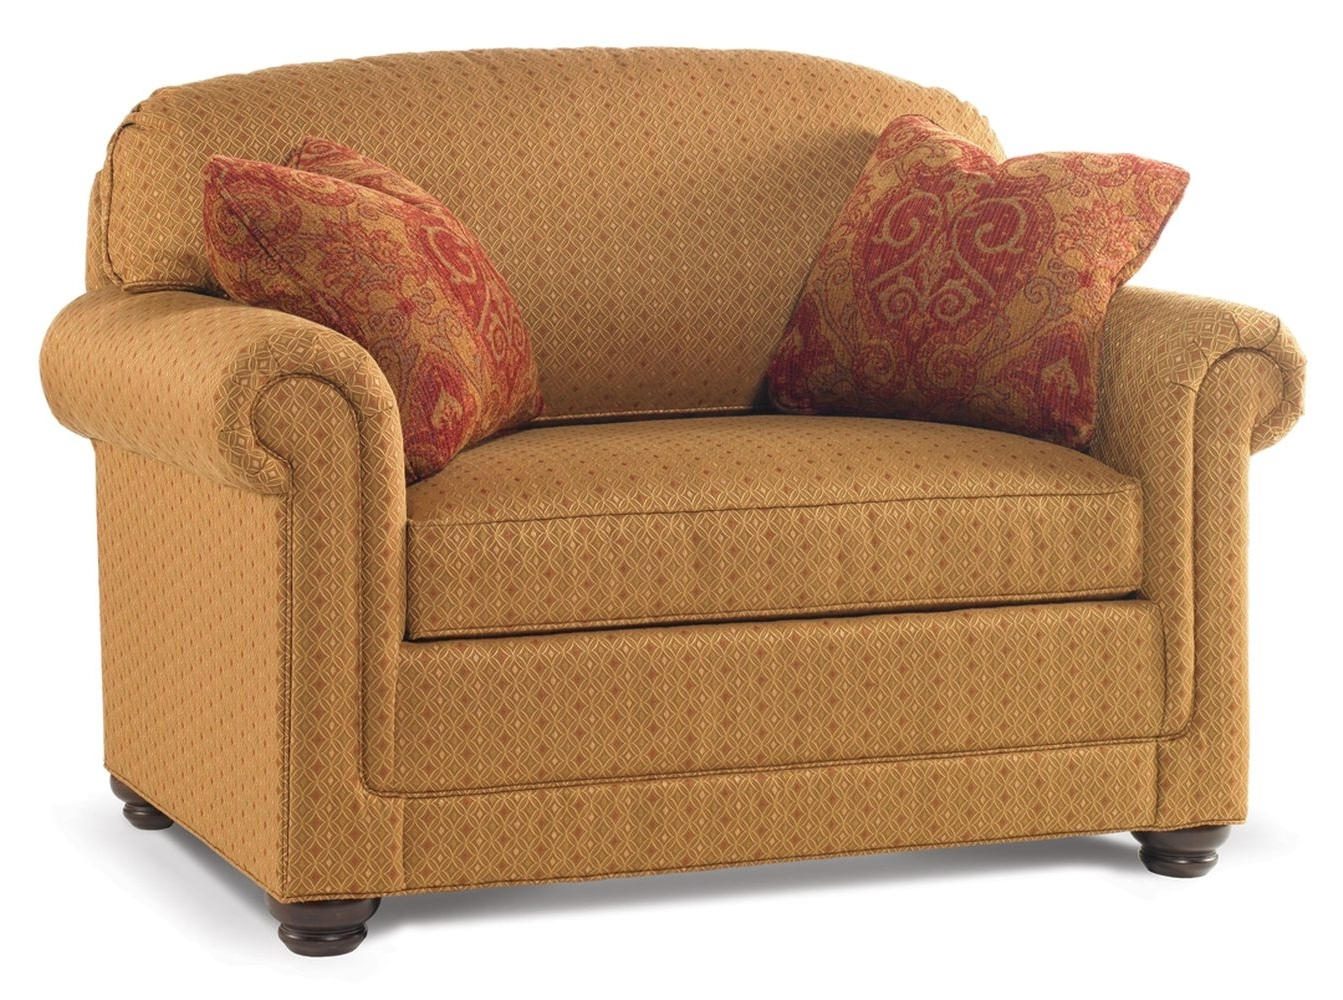 Small Sofas And Chairs For Trendy Small Twin Sleeper Sofas Chairs With Pillow And Storage Plus Brown (View 8 of 15)